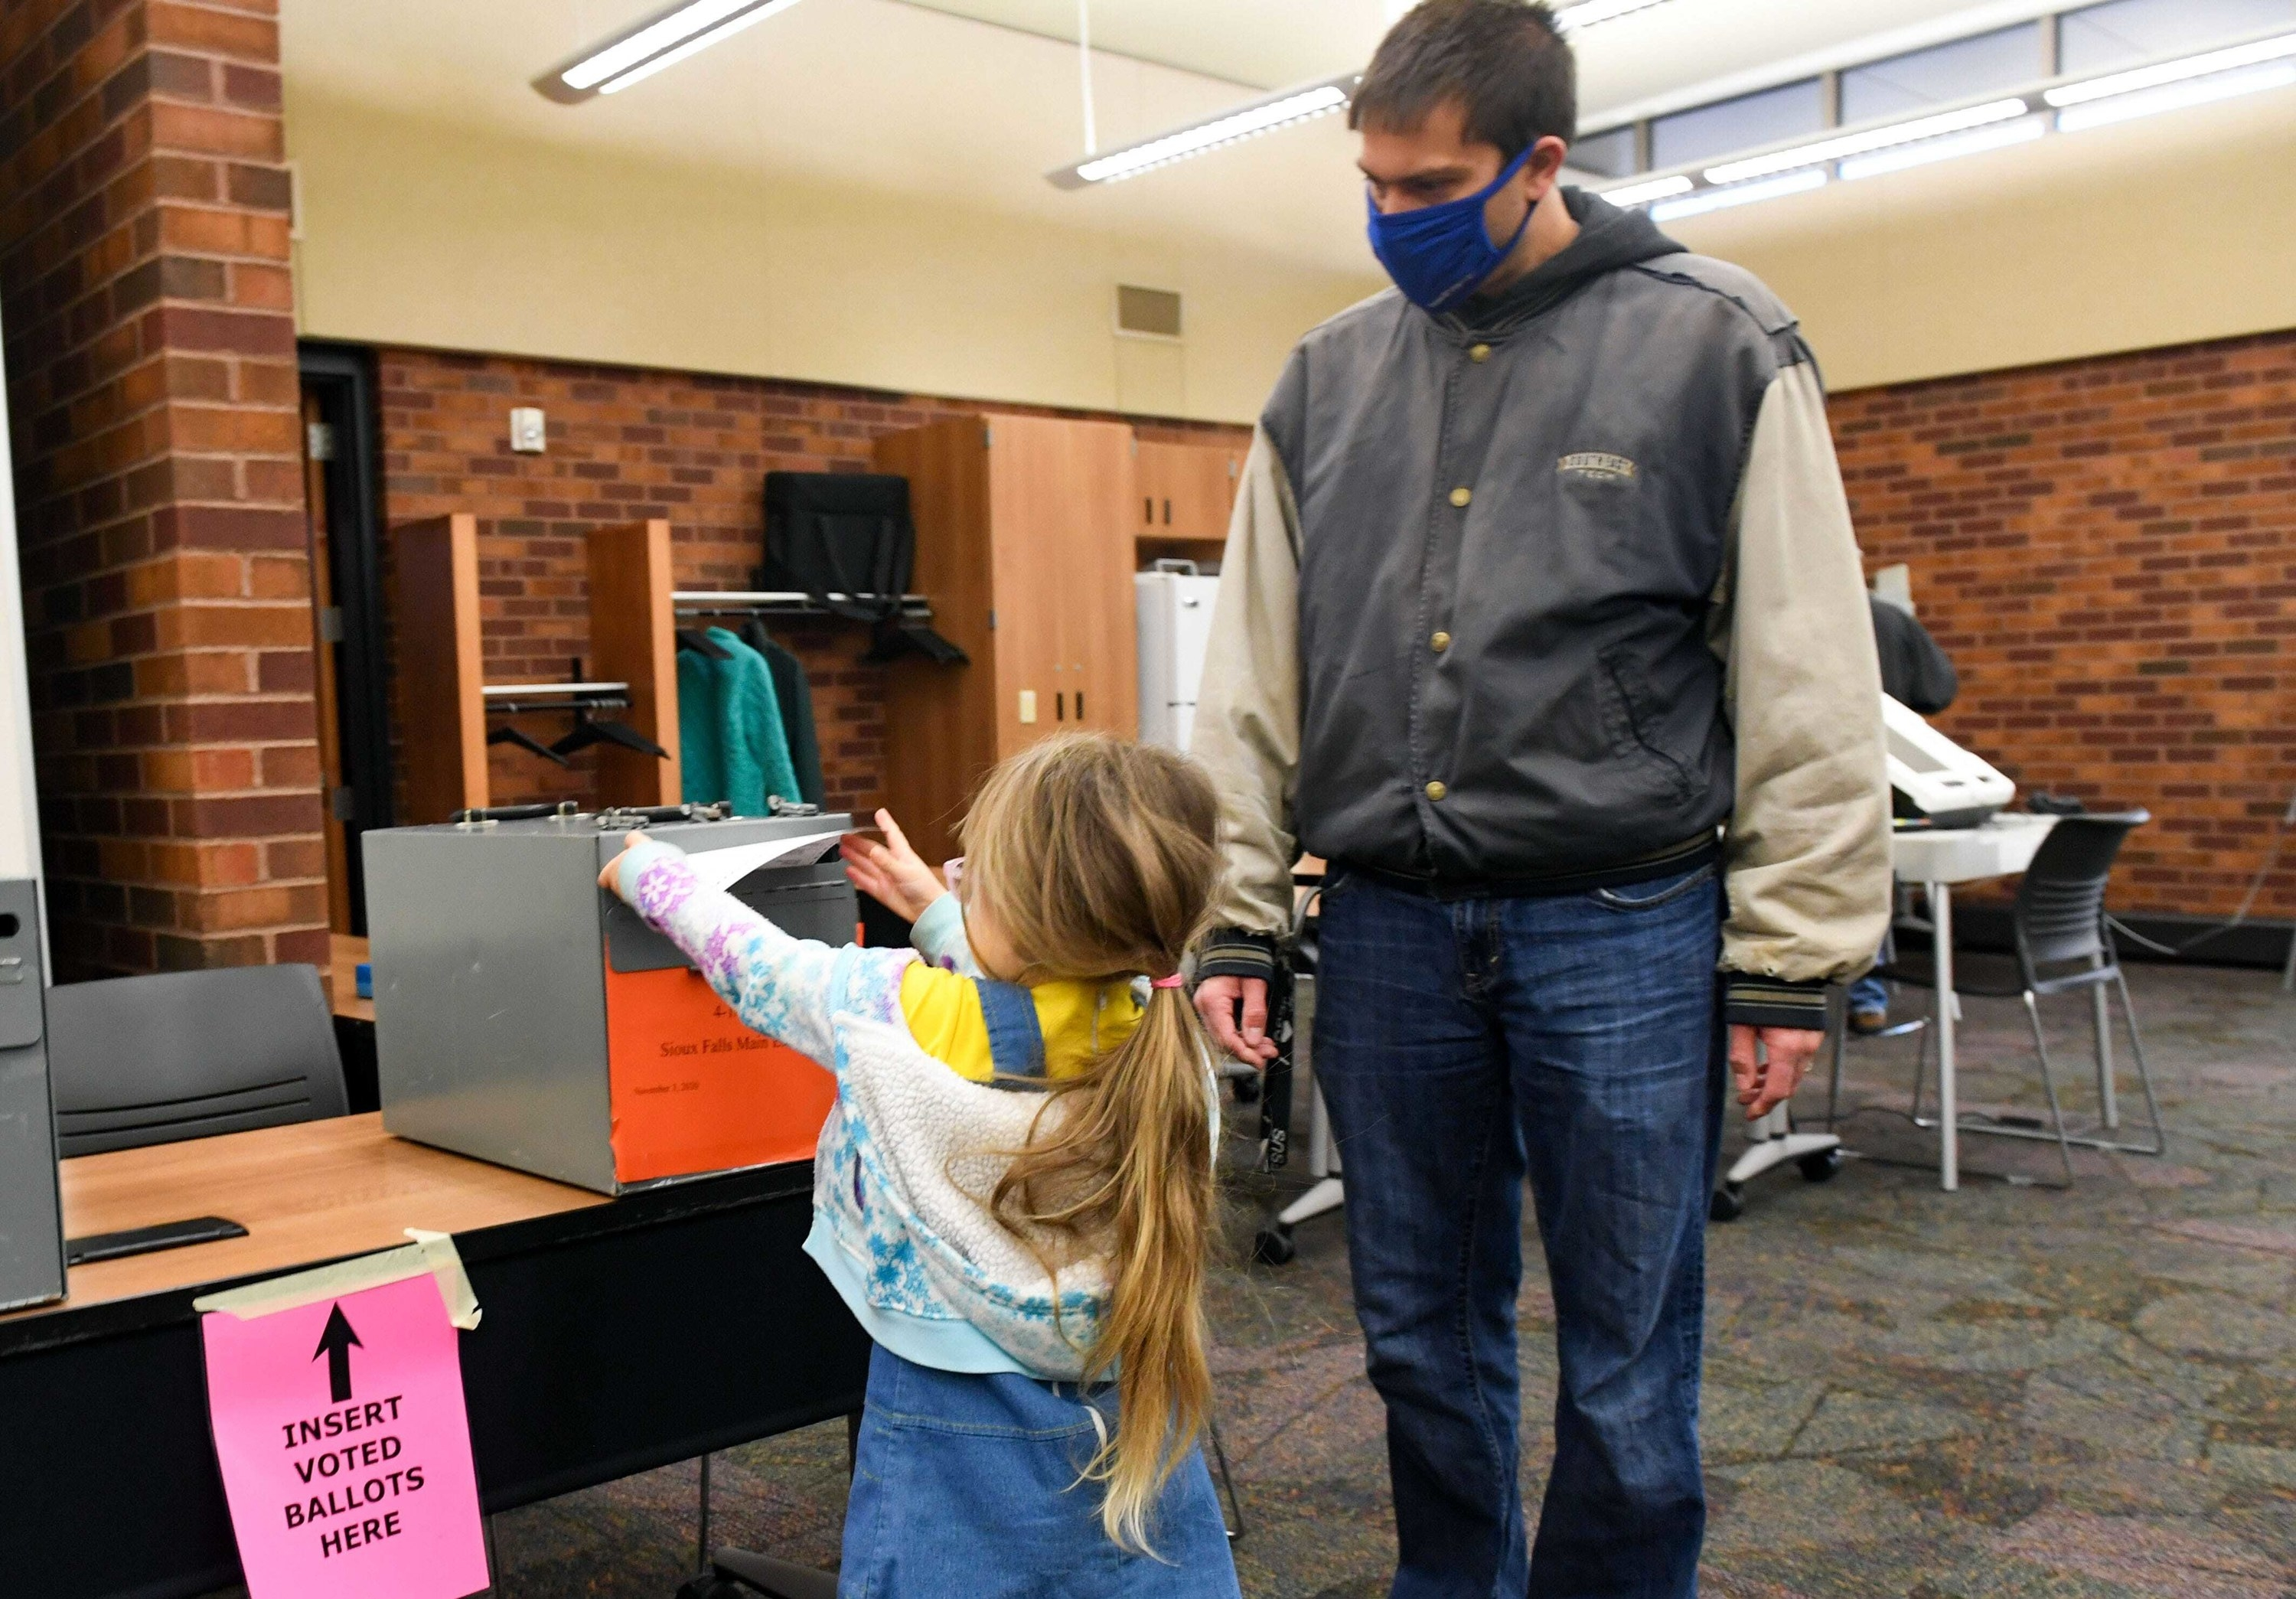 Young girl with ponytail helping her father vote.